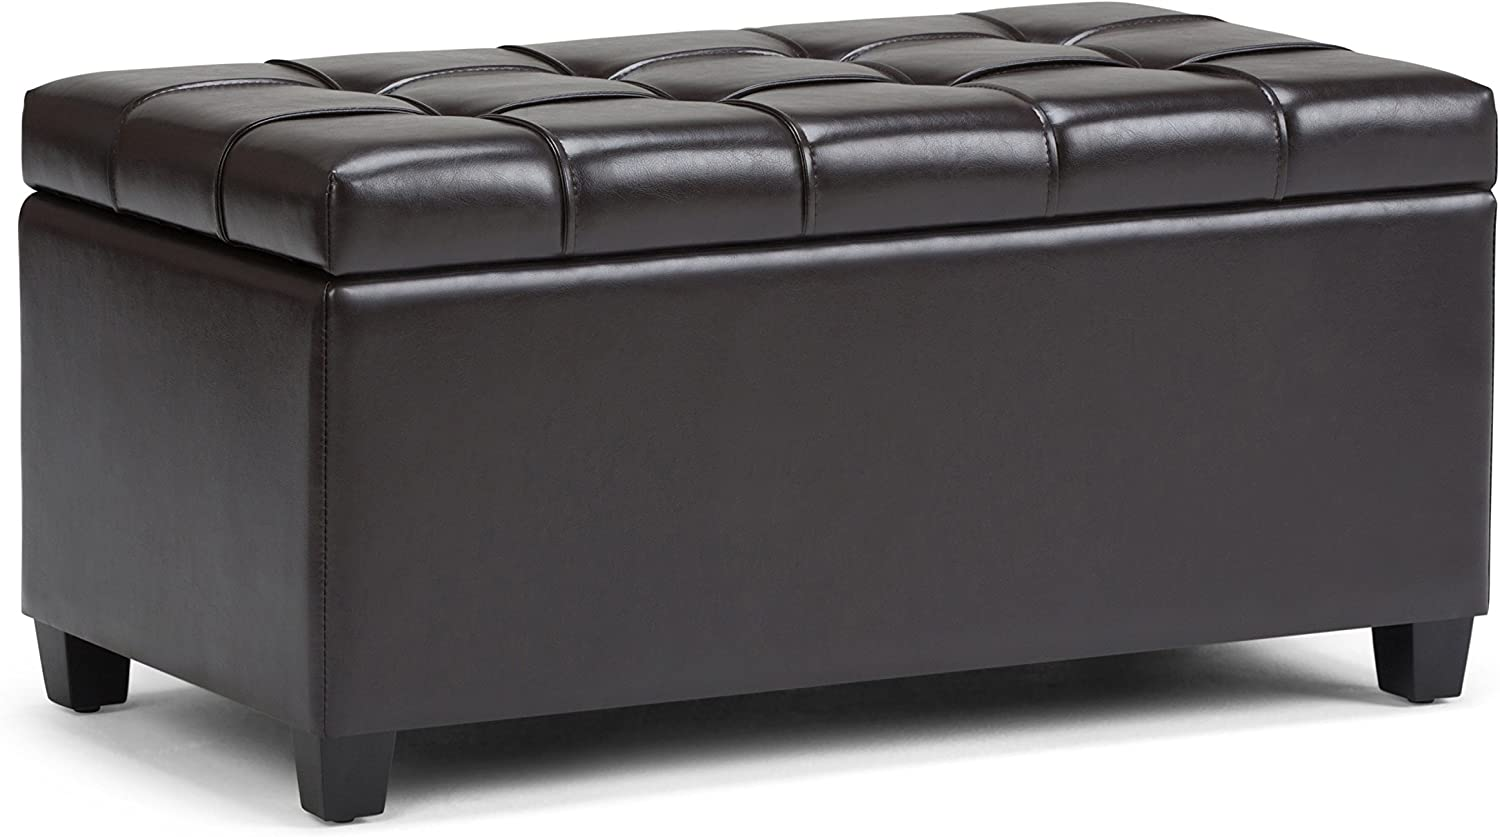 Simpli Home Sienna 34 inch Wide Rectangle Lift Top Storage Ottoman Bench in Tanners Brown Tufted Faux Leather, Footrest Stool, Coffee Table for the Living Room, Bedroom and Kids Room, Traditional